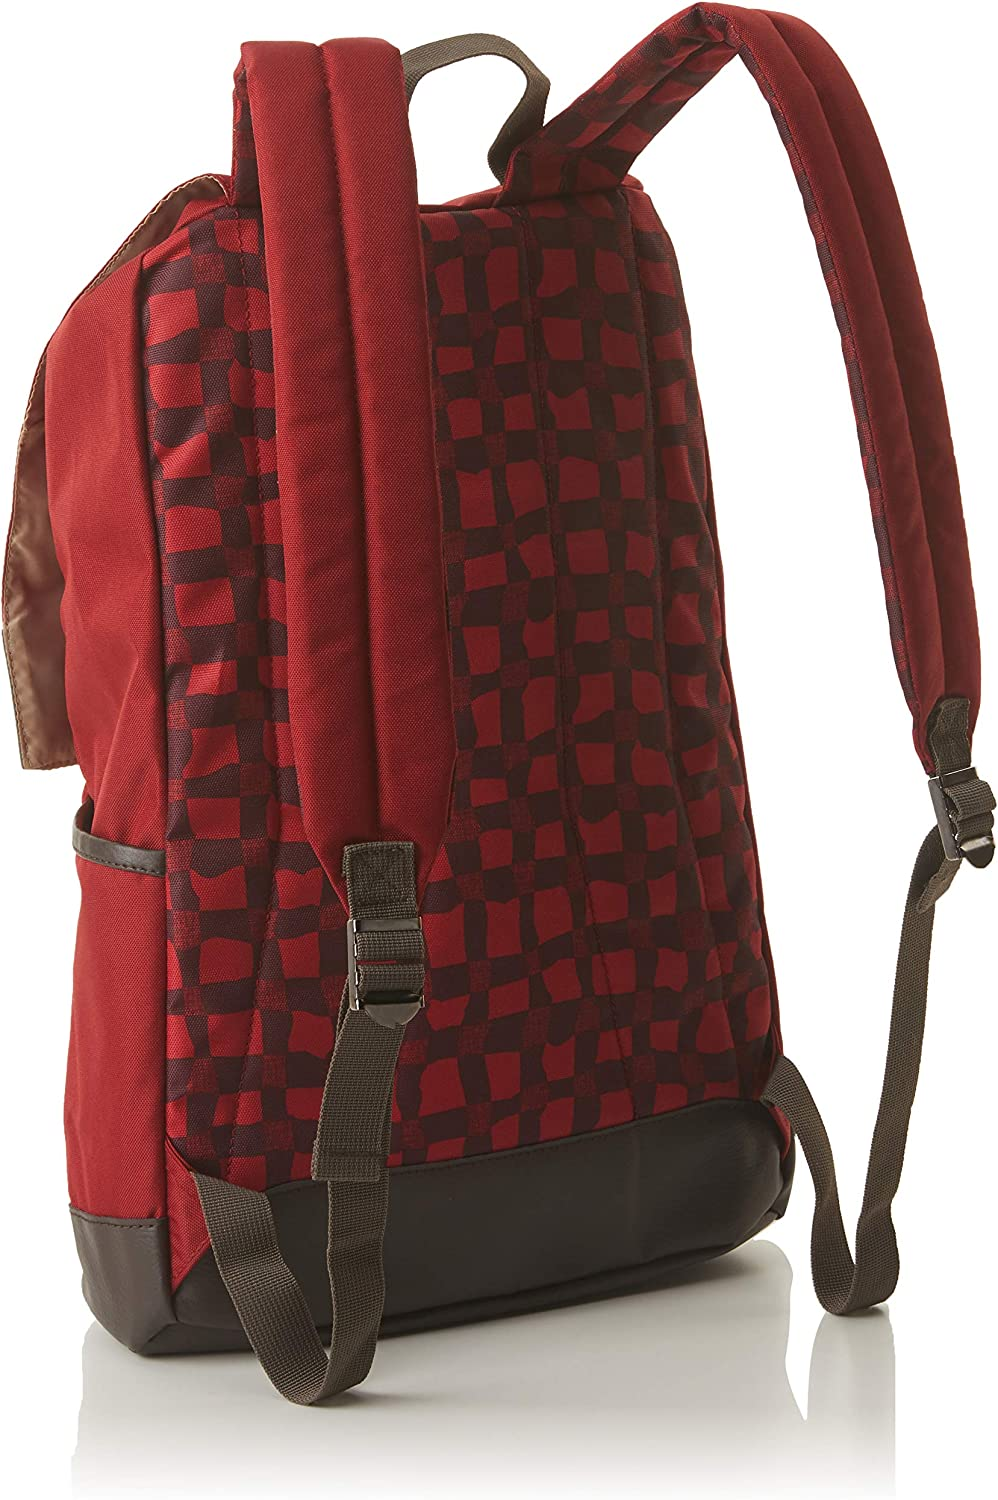 Wenzel Unisexs Stache 20 Hiking Backpack